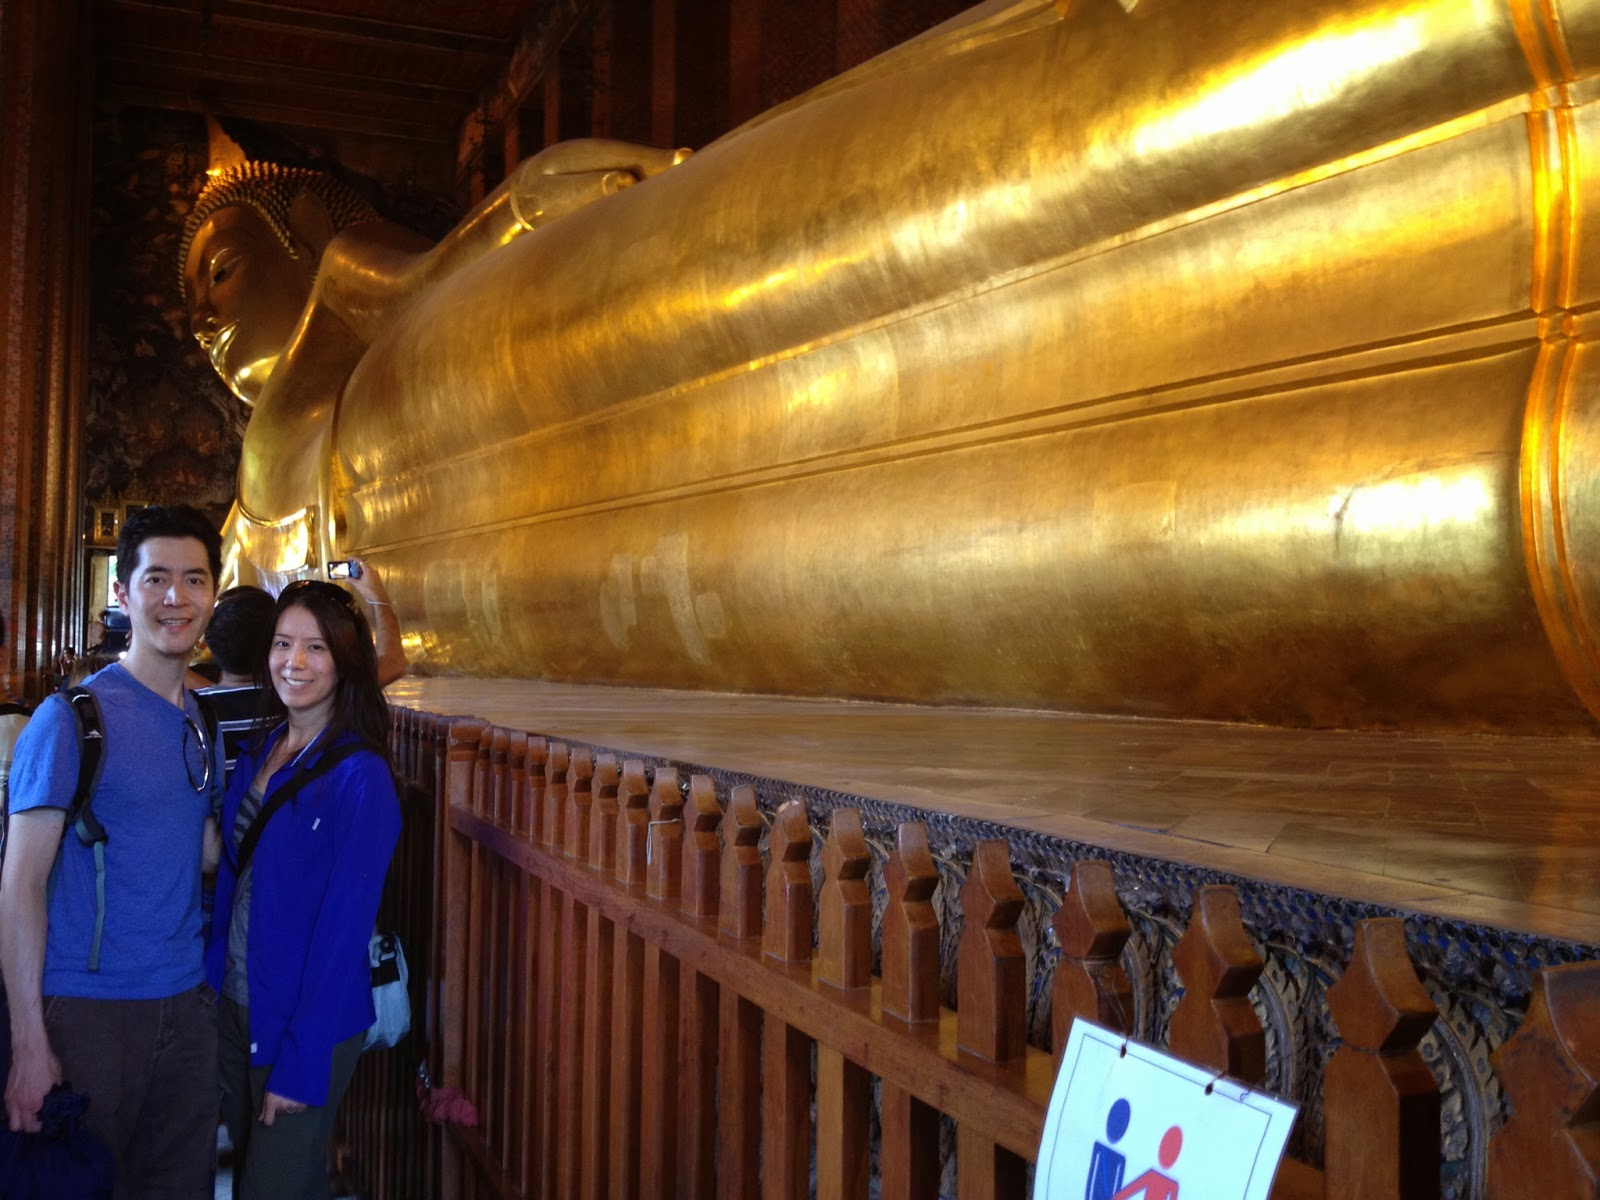 Bangkok - We got a picture with most of the Reclining Buddha